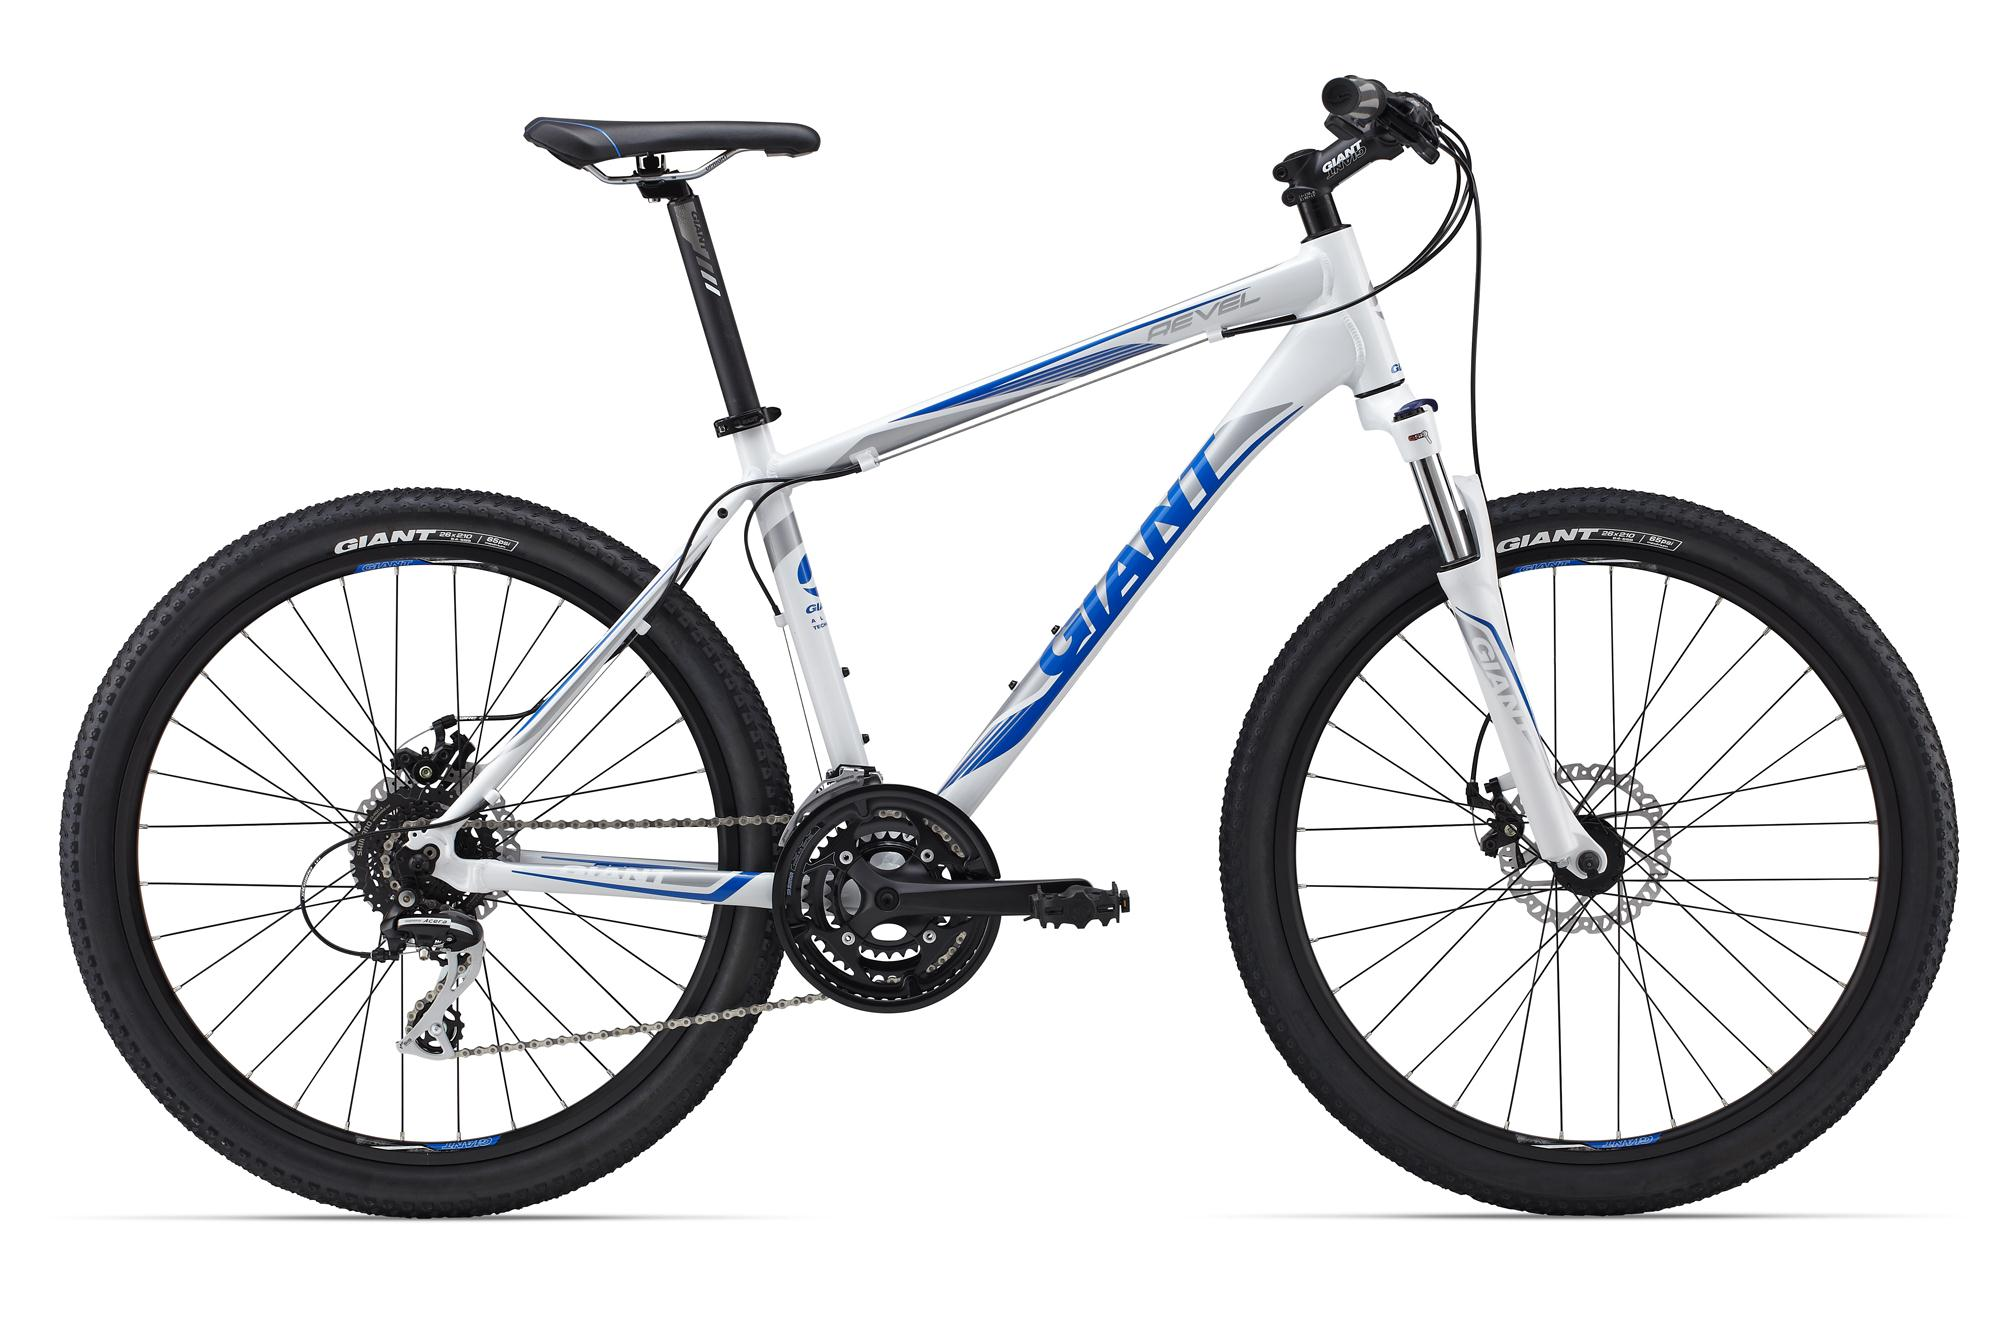 http://www.giant-bicycles.com/_generated/_generated_ua/bikes/models/images/2000/2015/Revel_%201_White.jpg